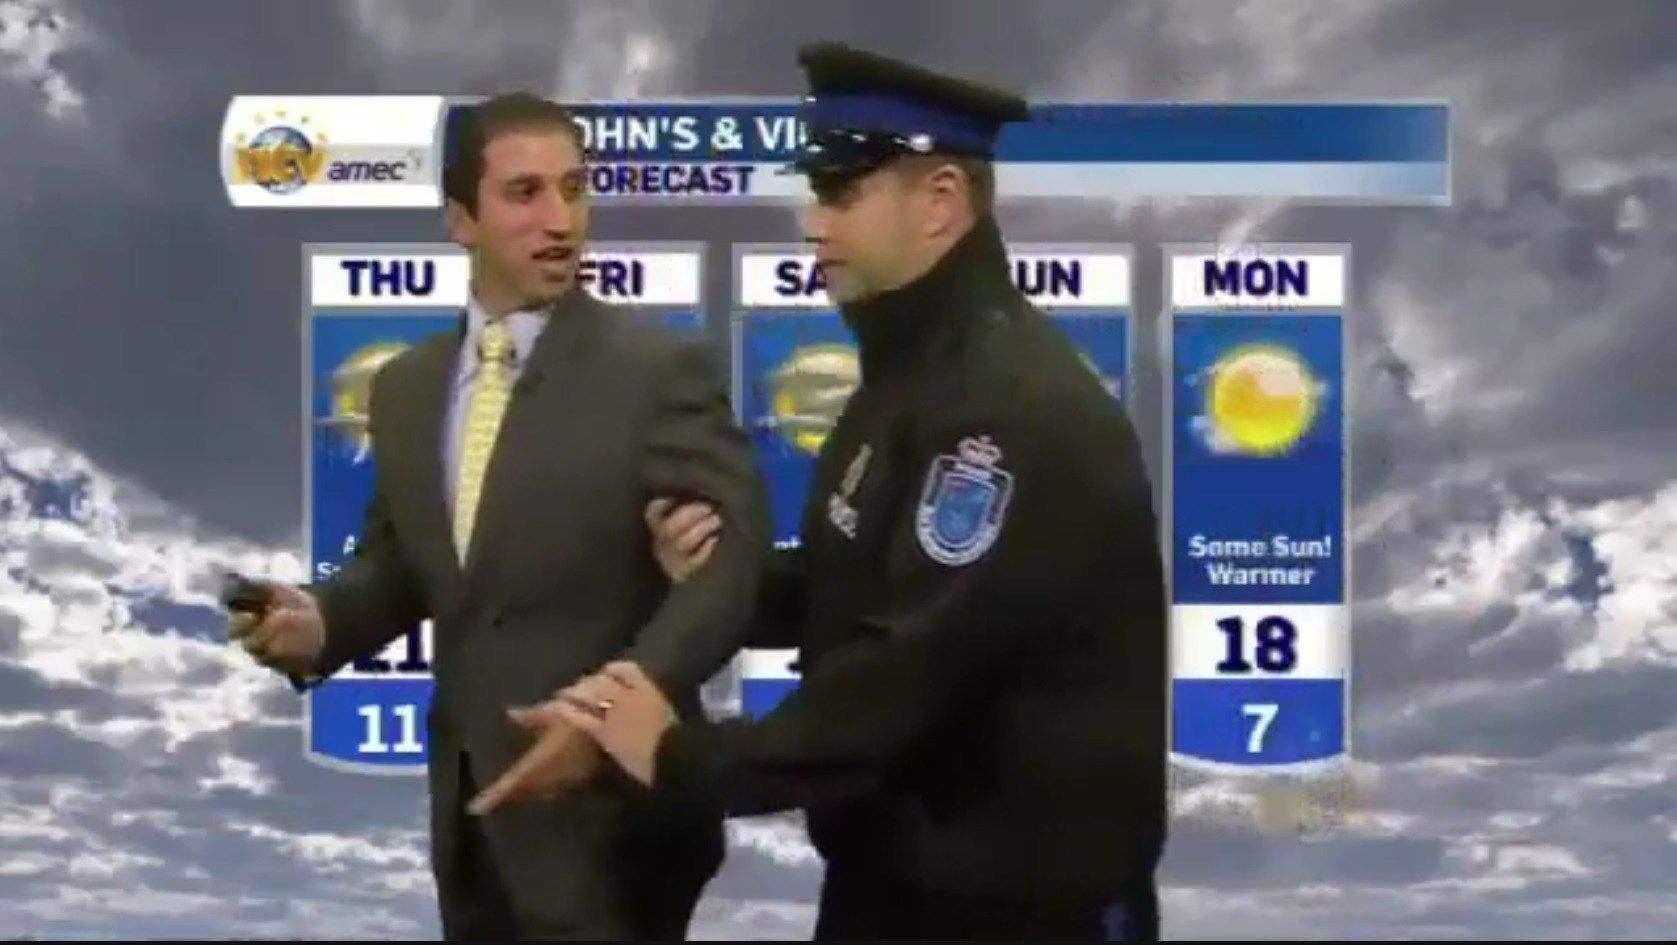 Meteorologist 'arrested' on live television - WBTV 3 News, Weather